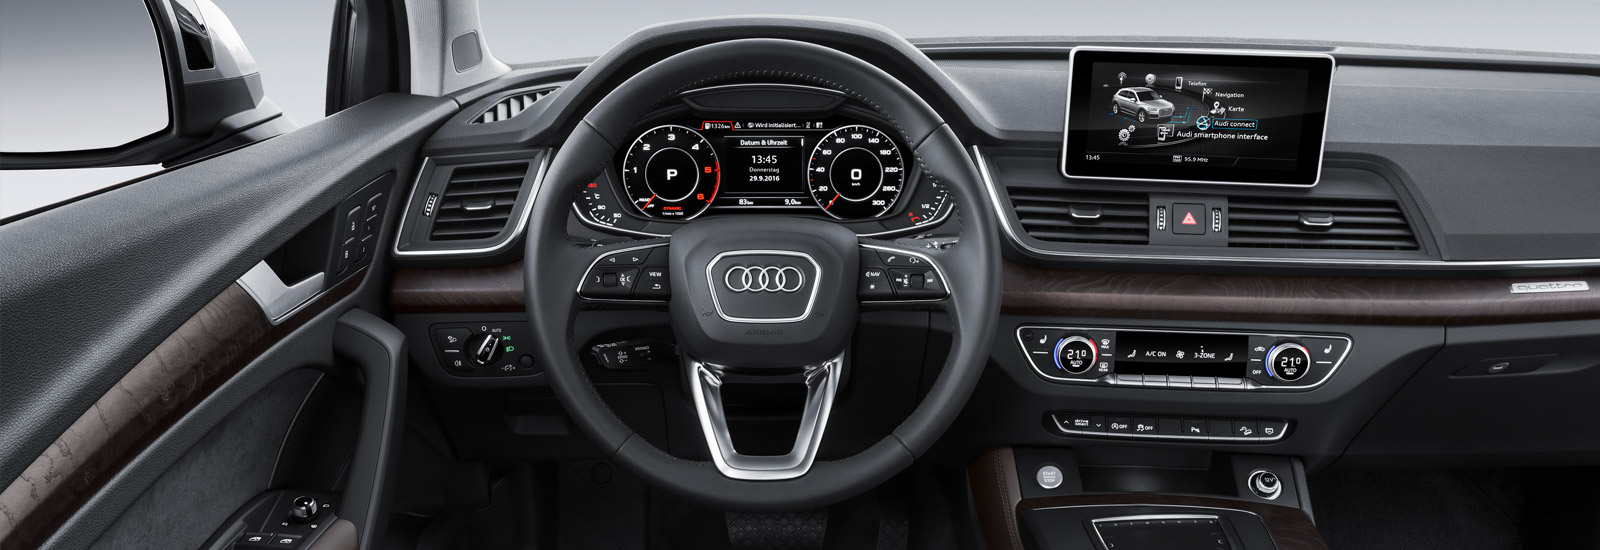 audi q3 2018 model. fine audi elements from the q5u0027s dashboard shown here should find their way to  new q3 inside audi q3 2018 model